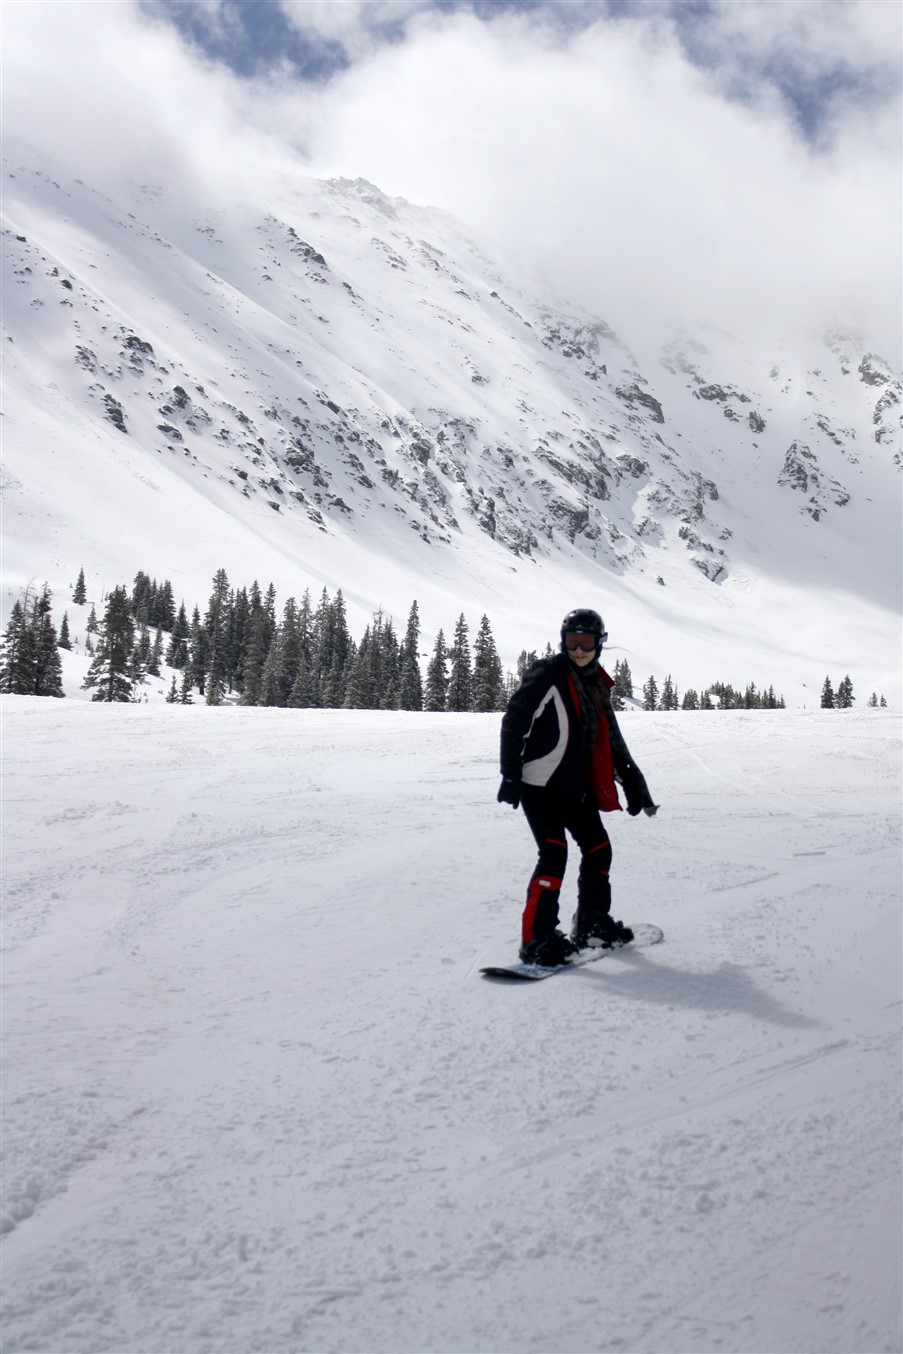 Denver – May 2010 – Snow Fun at Arapahoe Basin